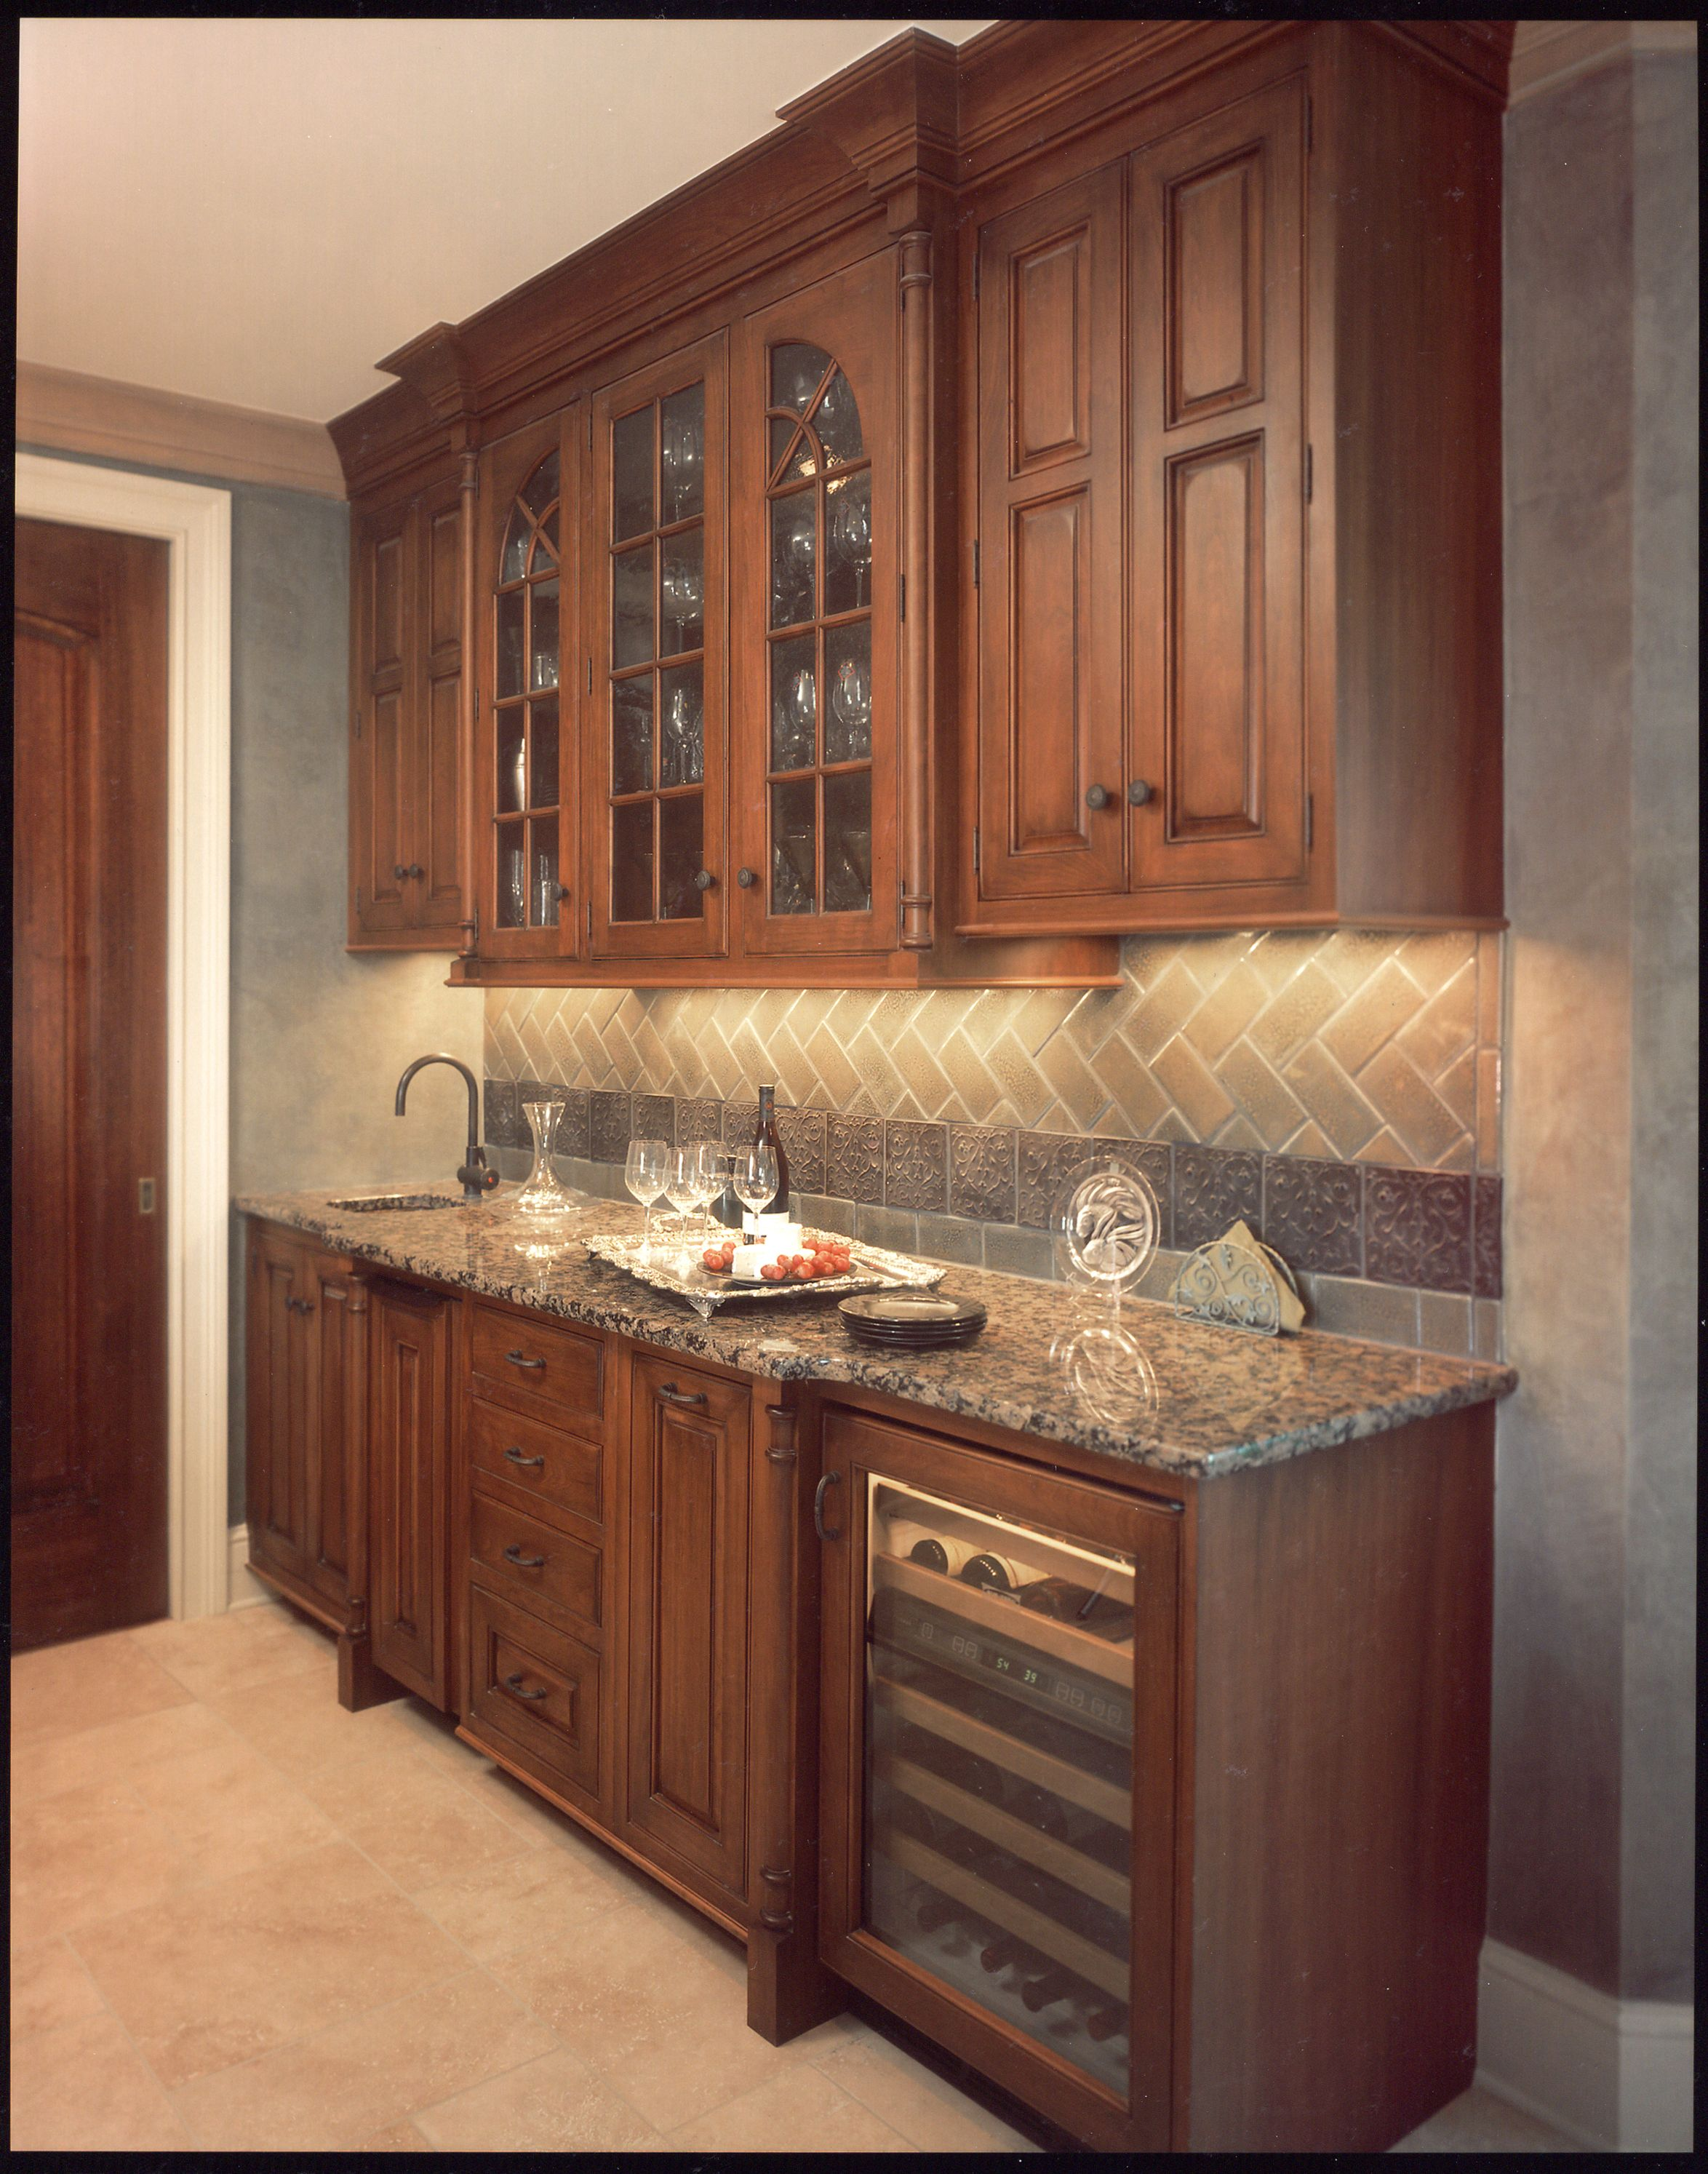 Butler S Pantry Designed By One Of Our Award Winning Certified Kitchen Designers On Staff